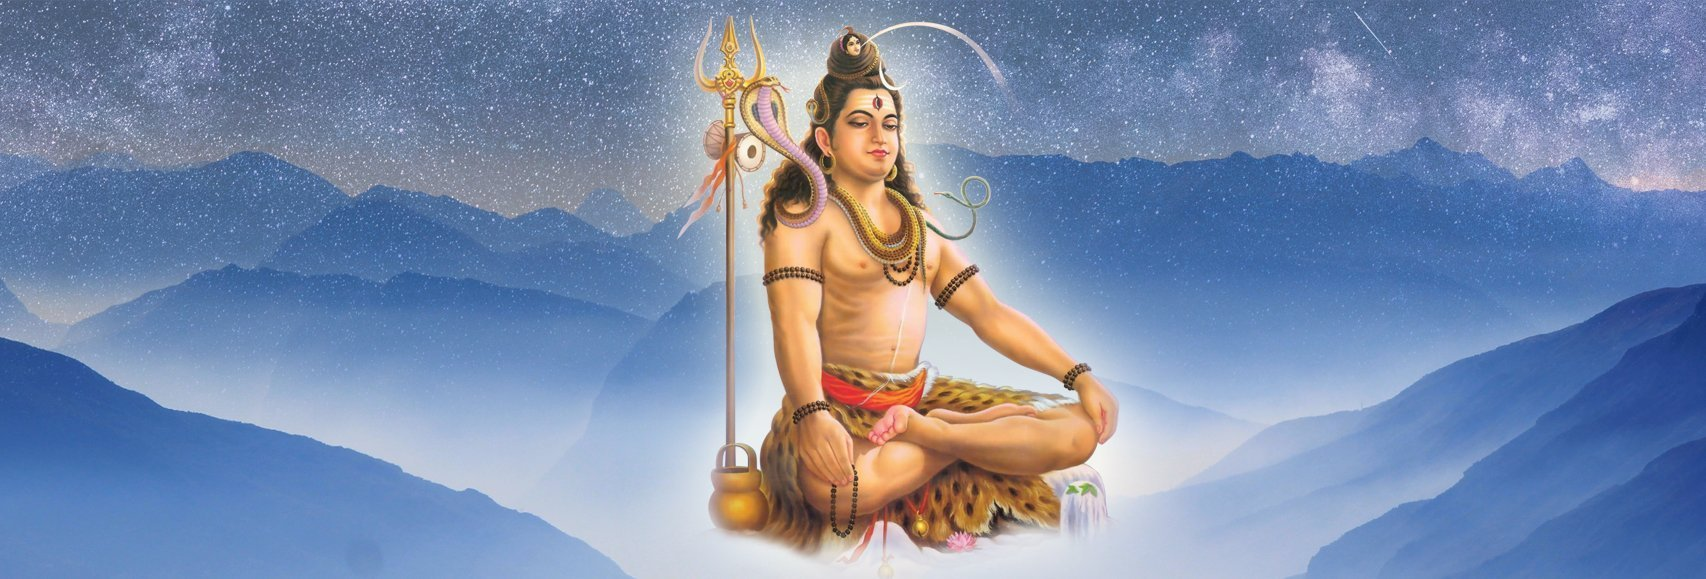 Bhagwan Shiv Page Cover Picture